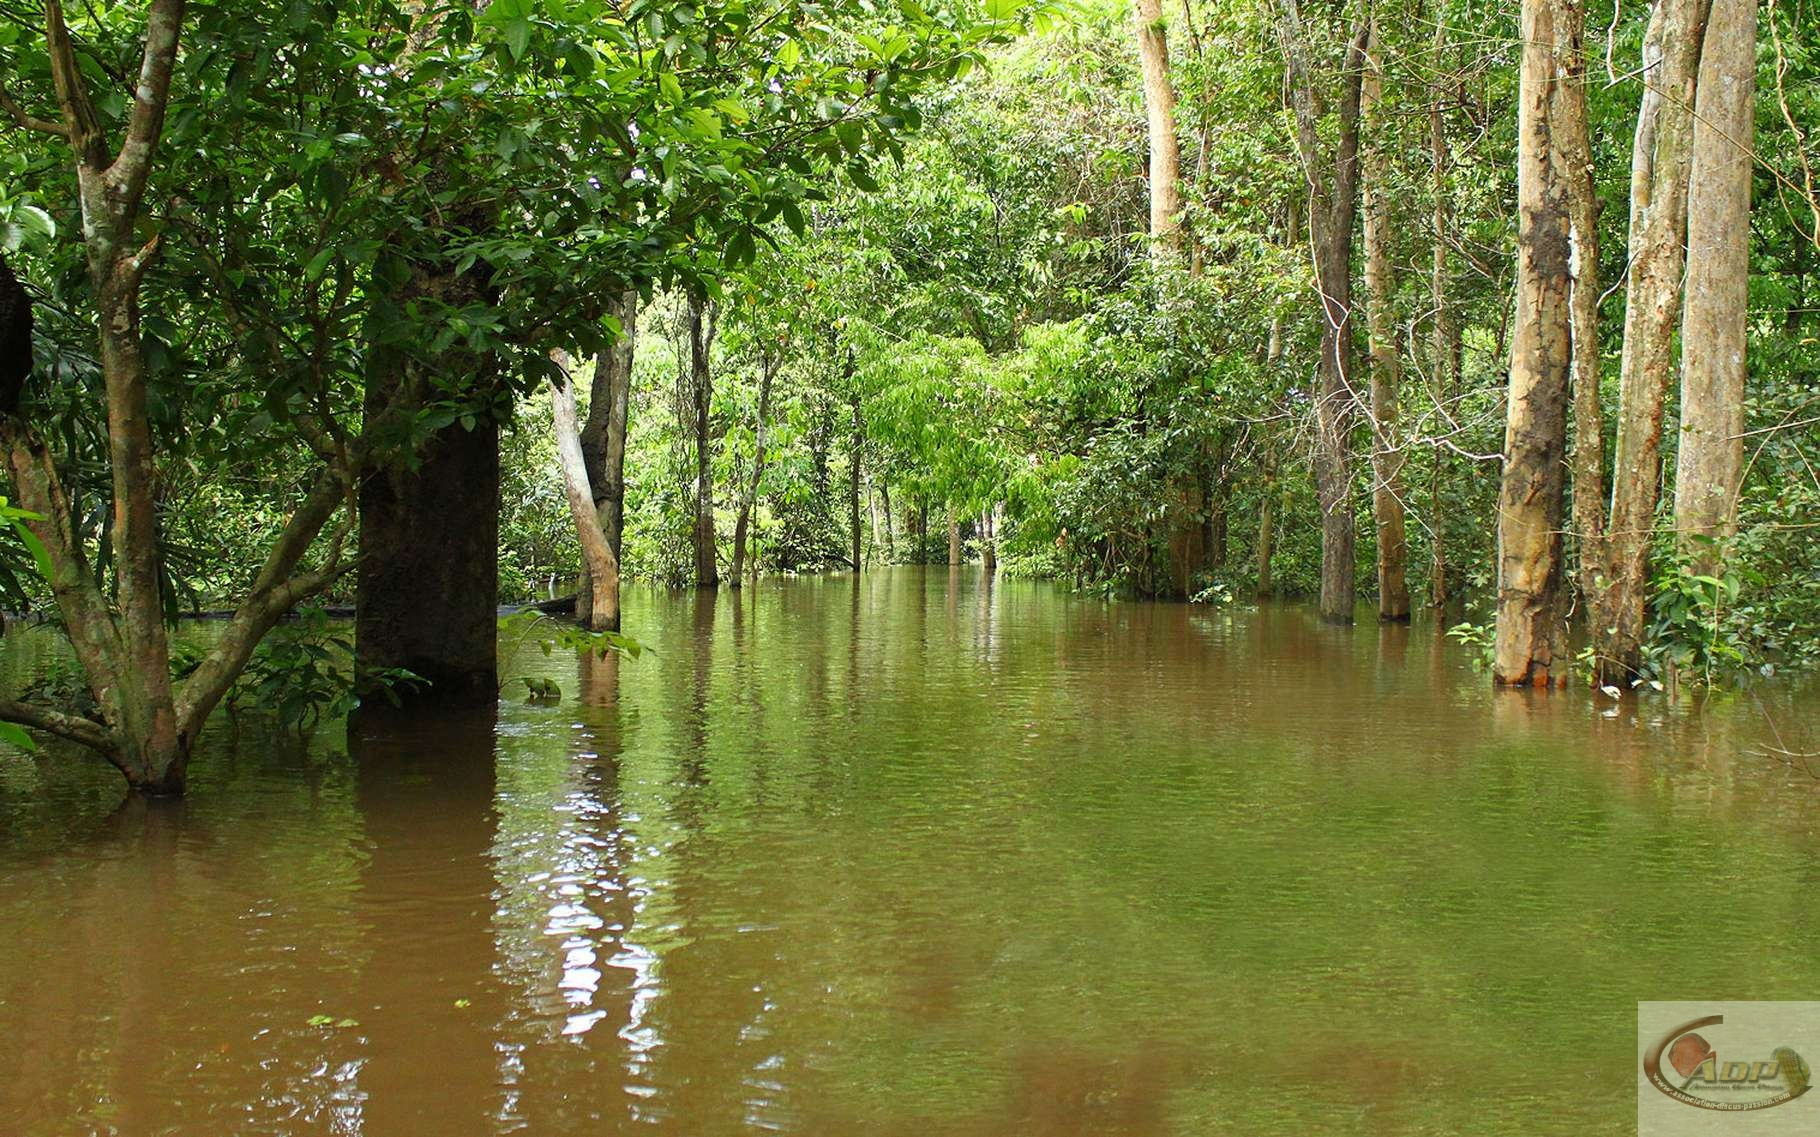 Parc National de Jaú - Amazonie. © Artur Warchavchik, Wikimedia commons, CC by-sa 3.0